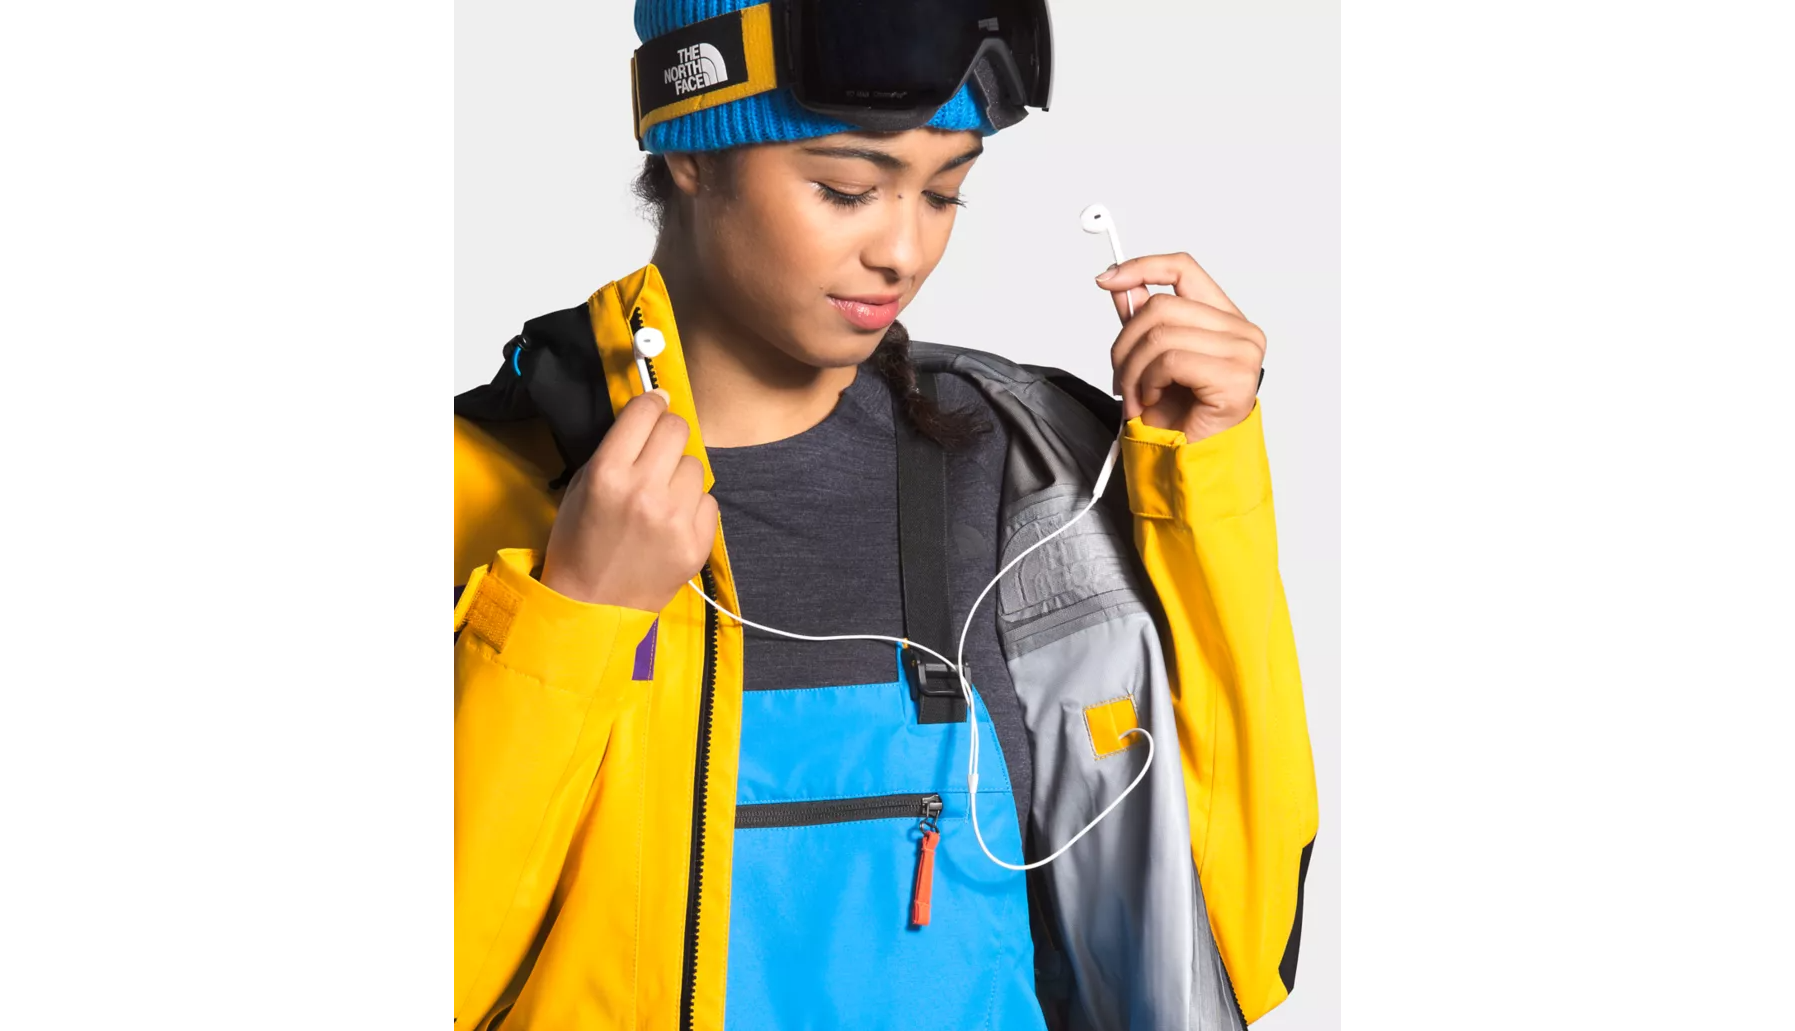 The North Face The North Face Women's Team Kit Jacket